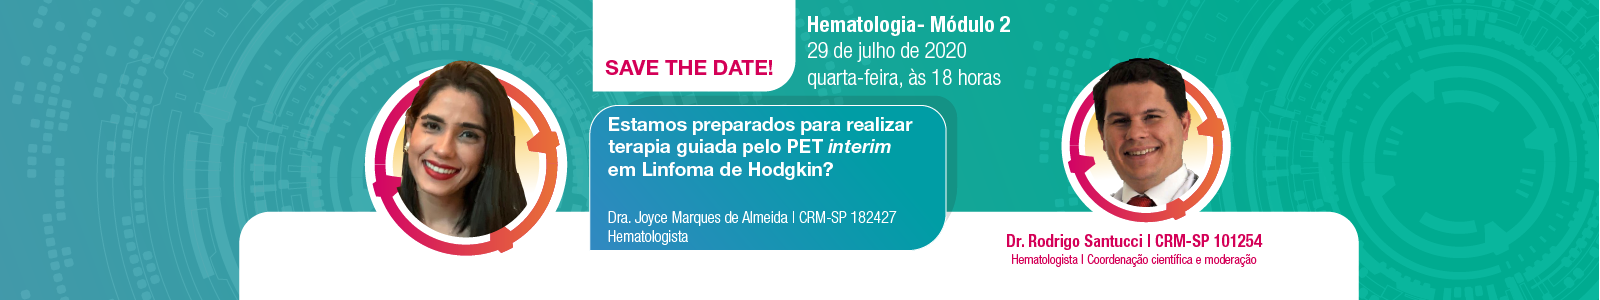 Aulas-banners-hematologia-Módulo 2-save the date